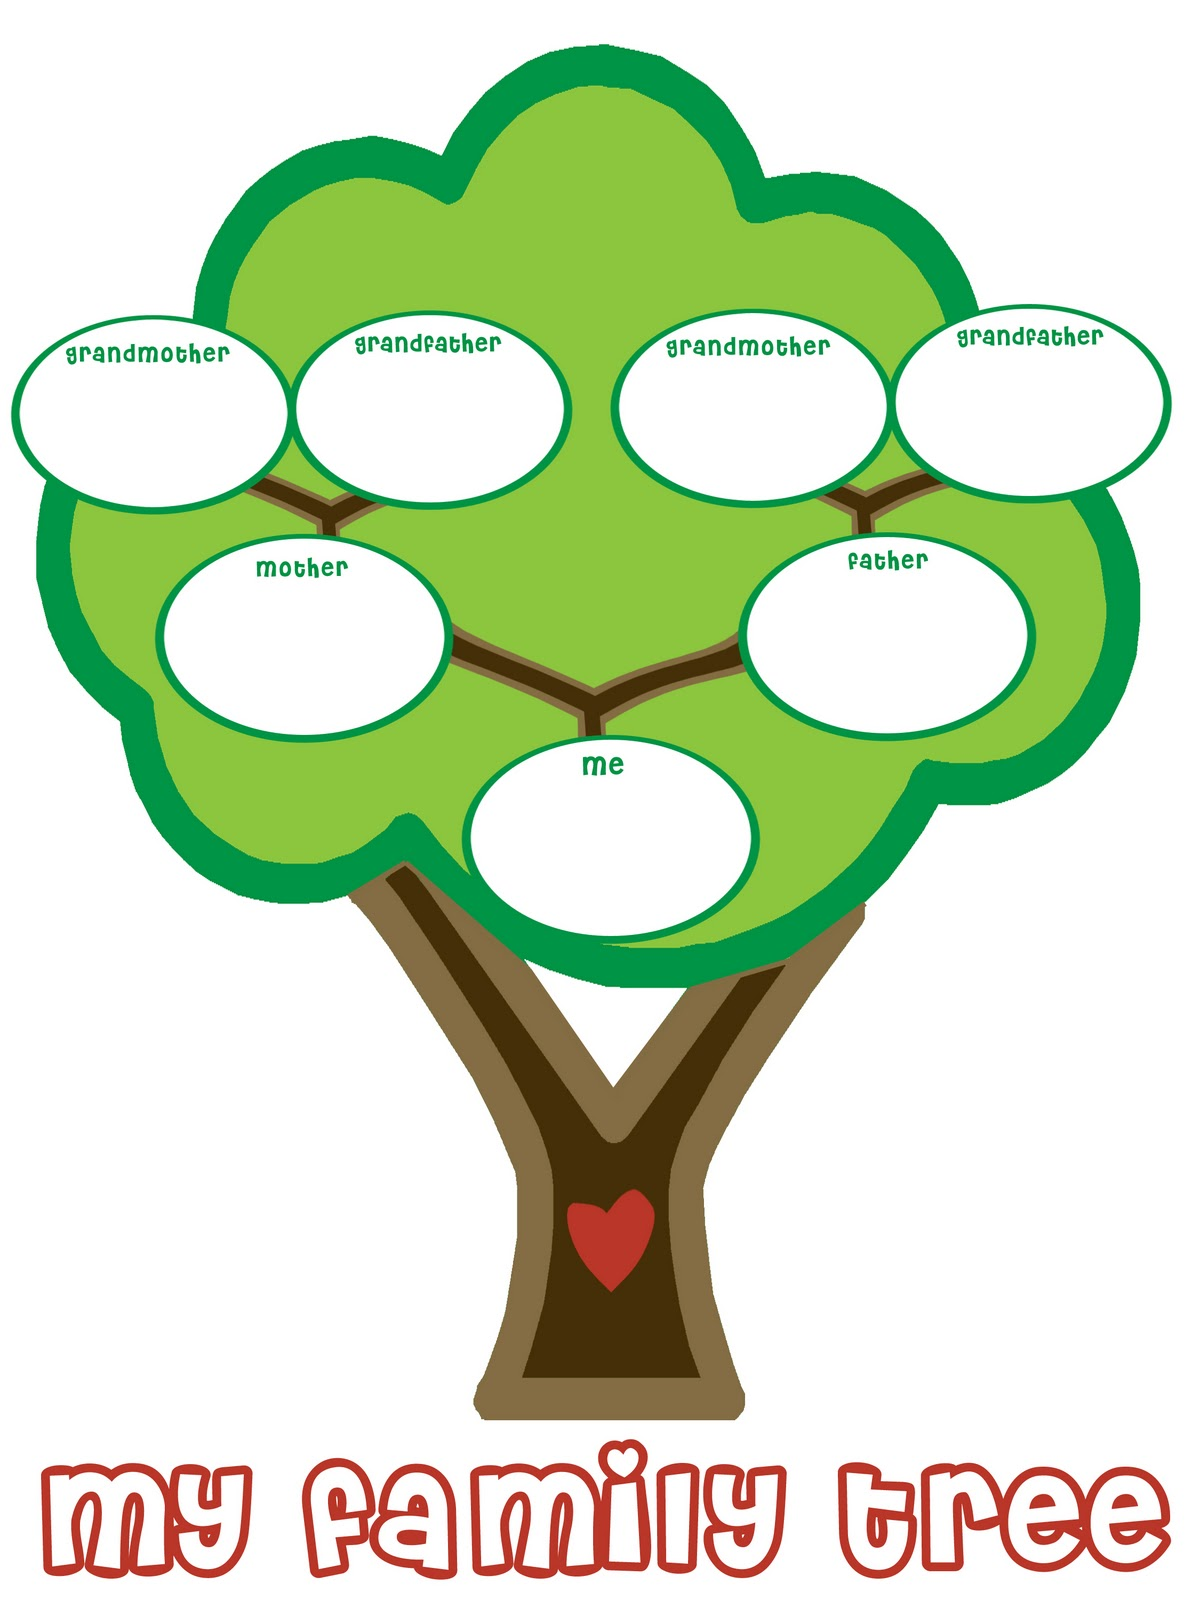 15 Blank Family Tree For Kids Free Cliparts That You Can Download To